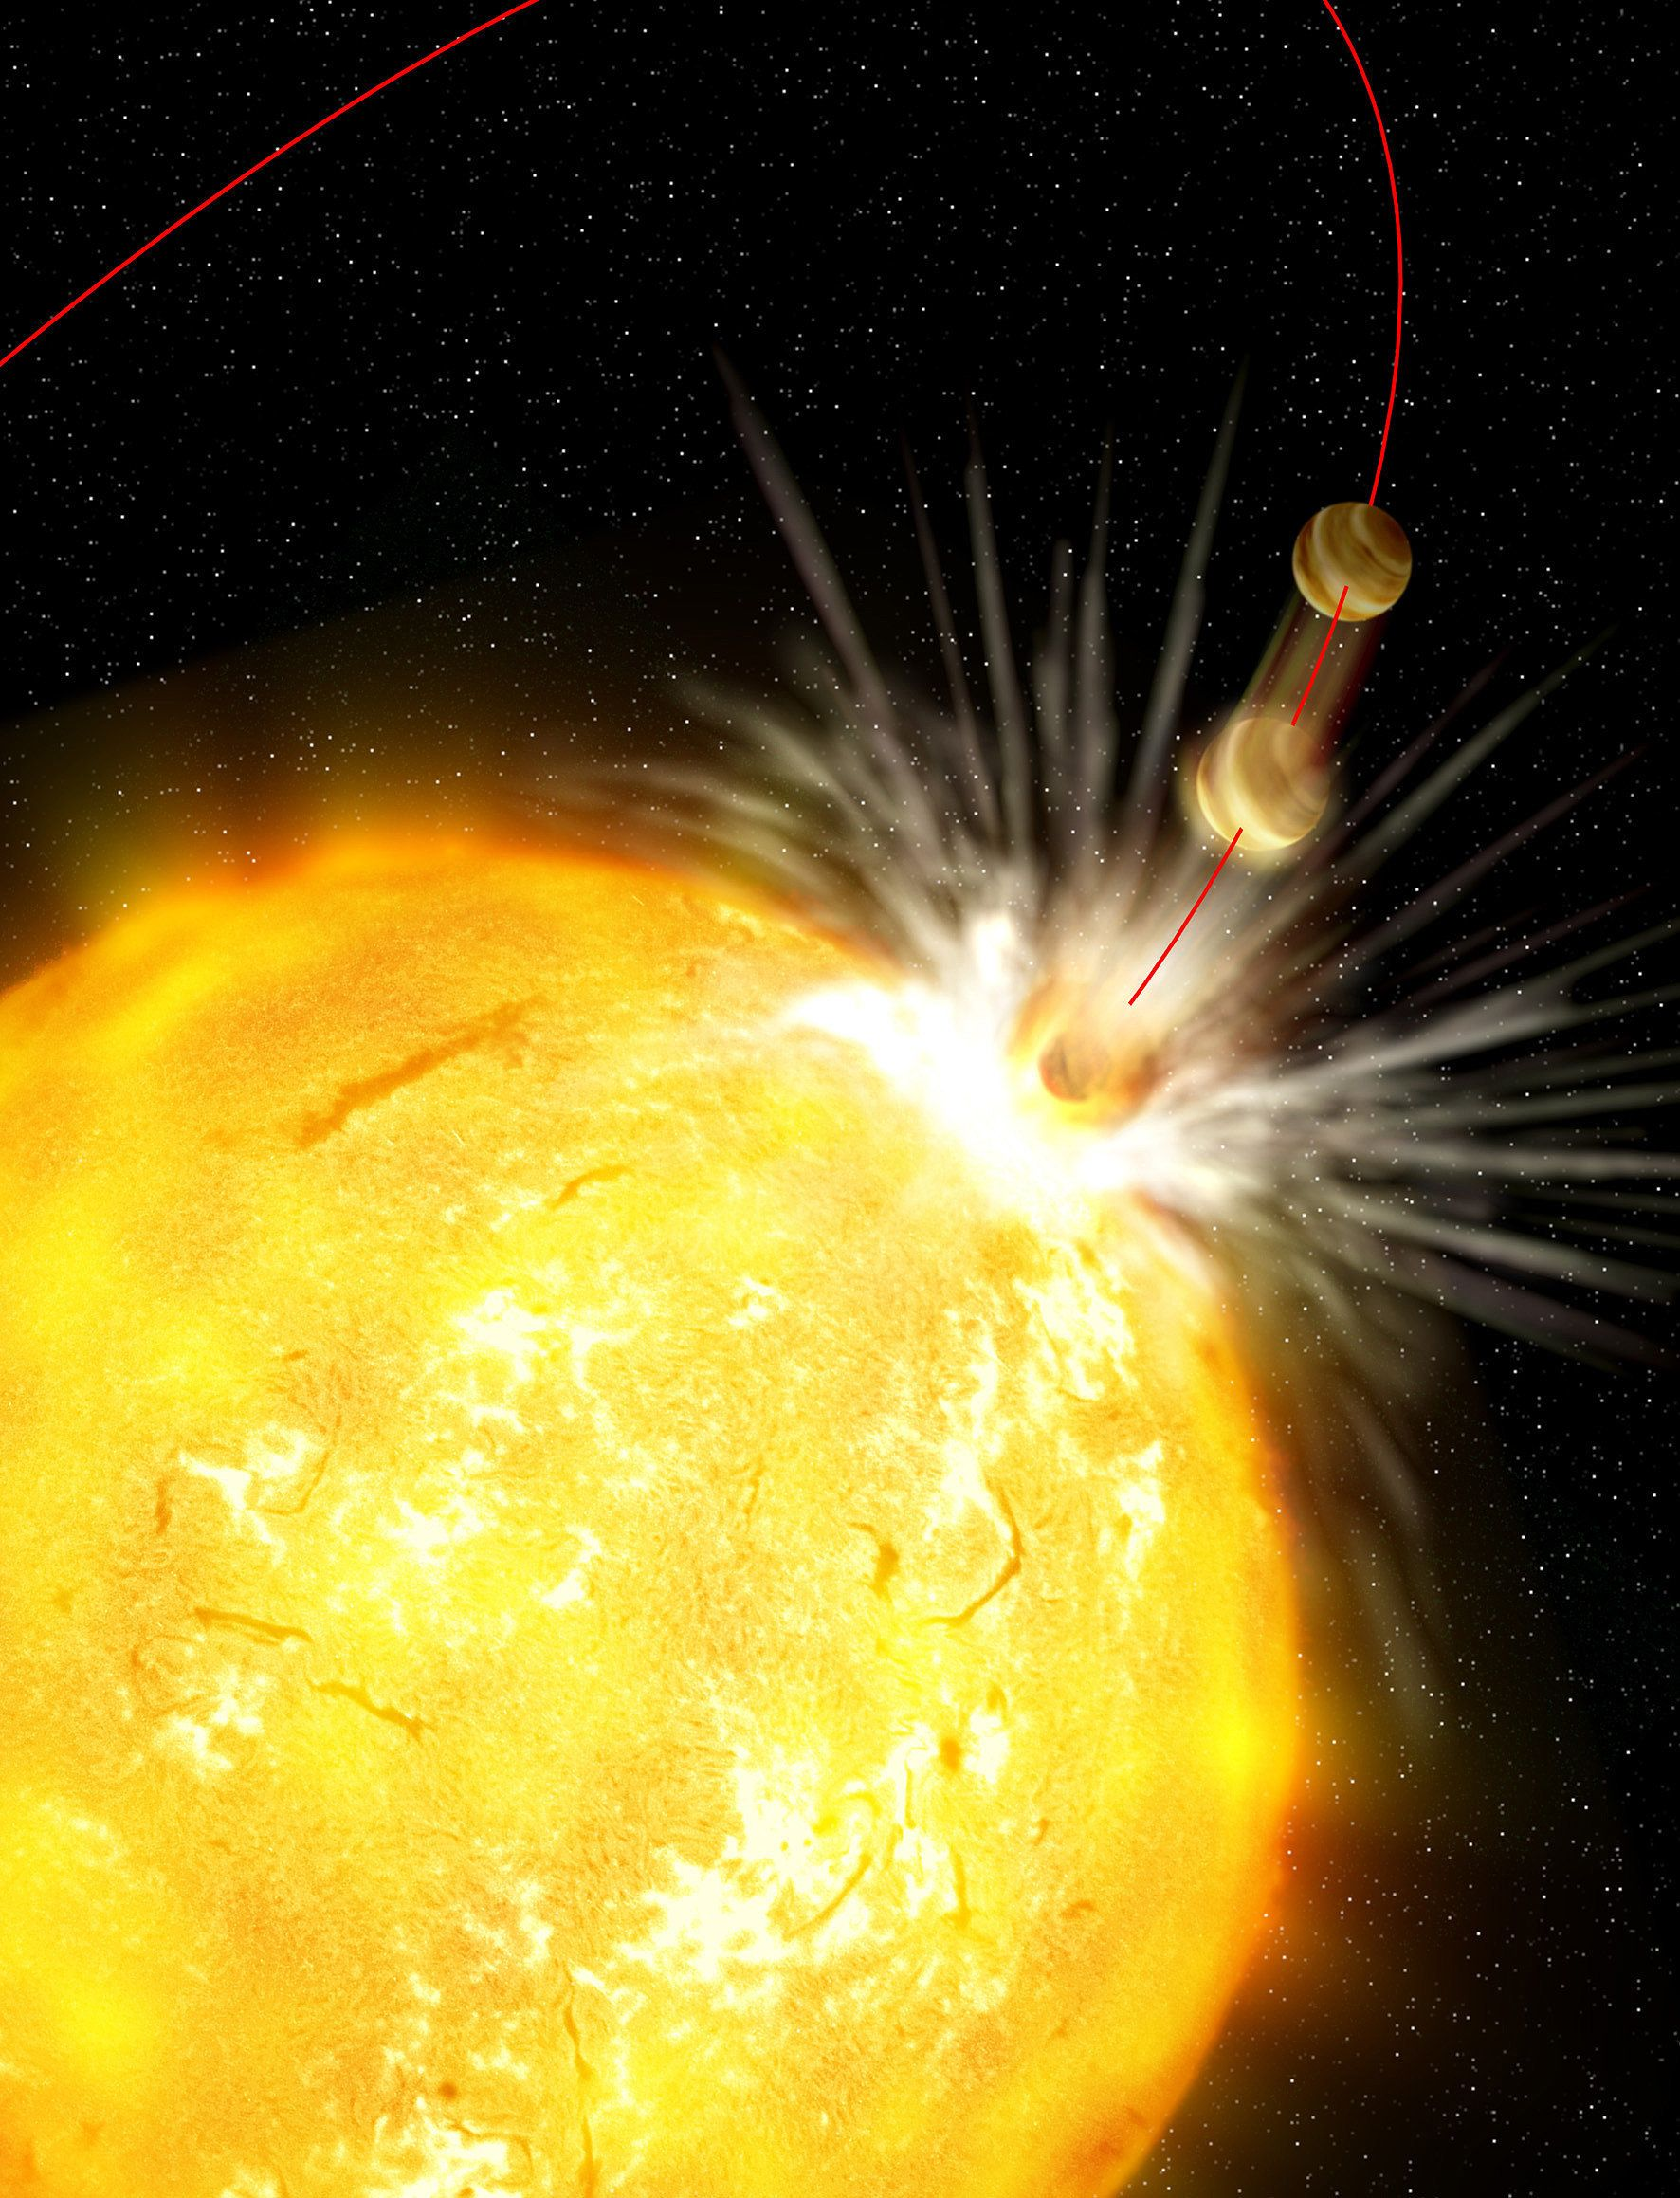 This Planet-Eating Star Is A Horrifying Glimpse Into Our Own Fiery